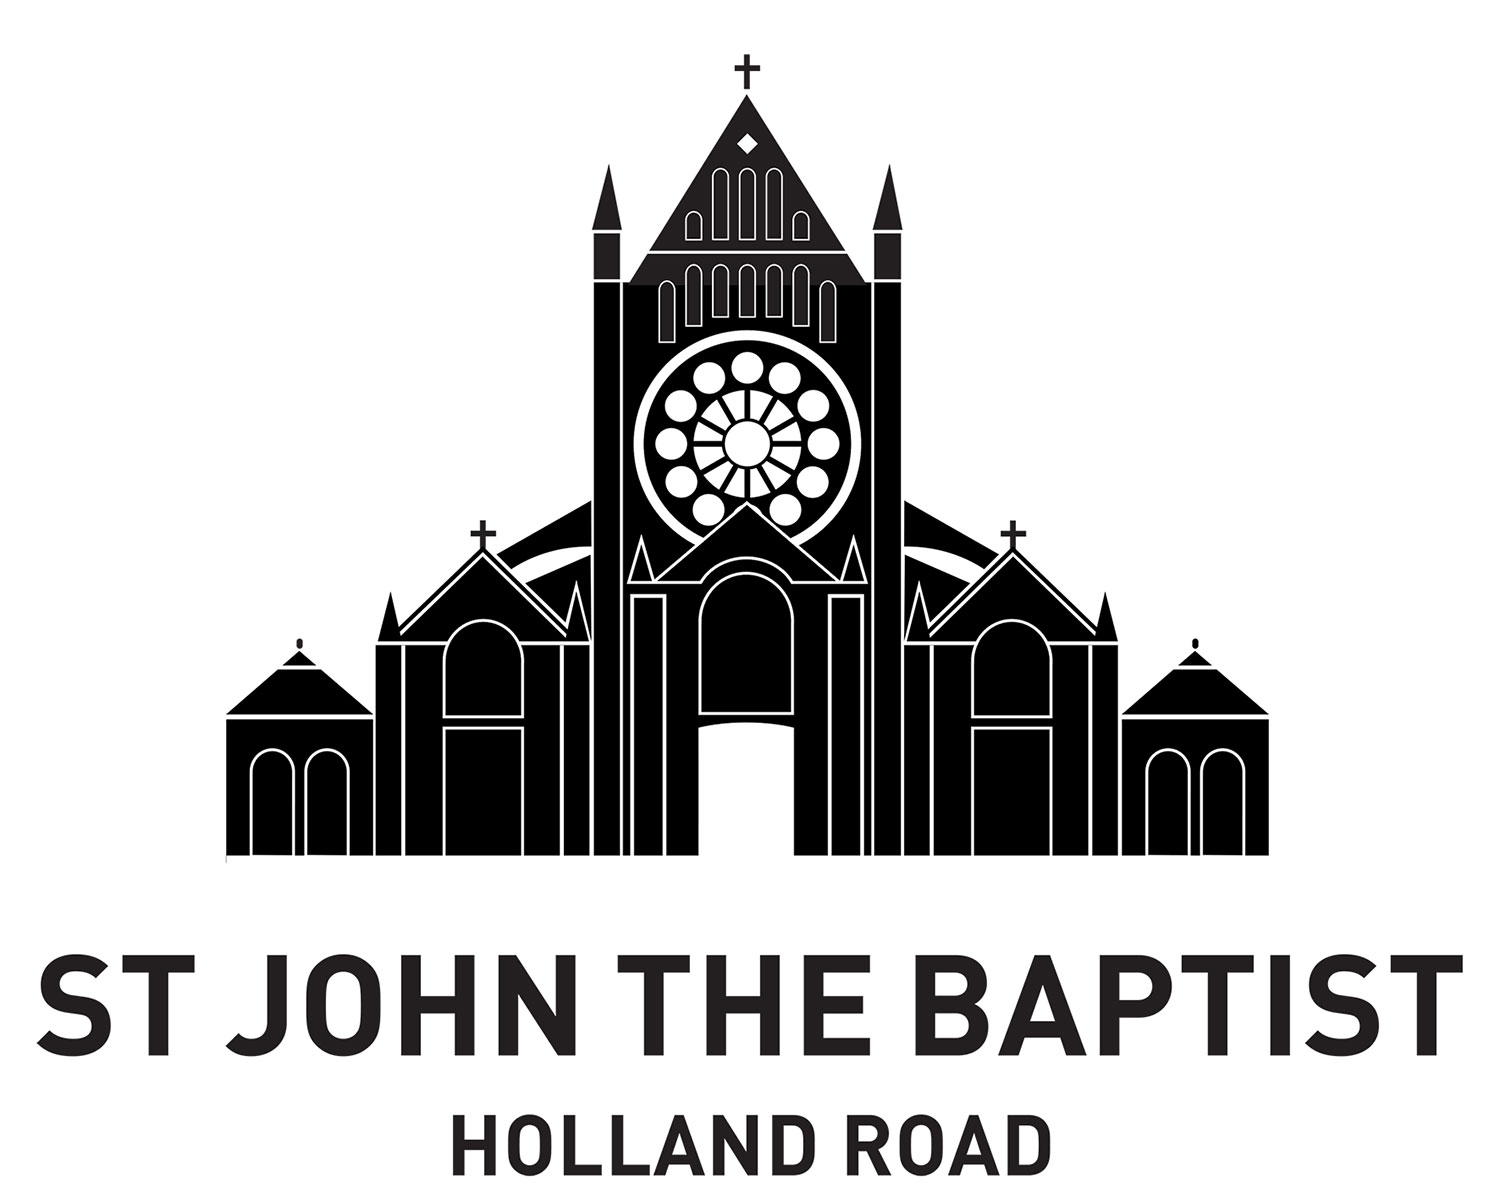 St John the Baptist Church Holland Road Shepherds Bush London